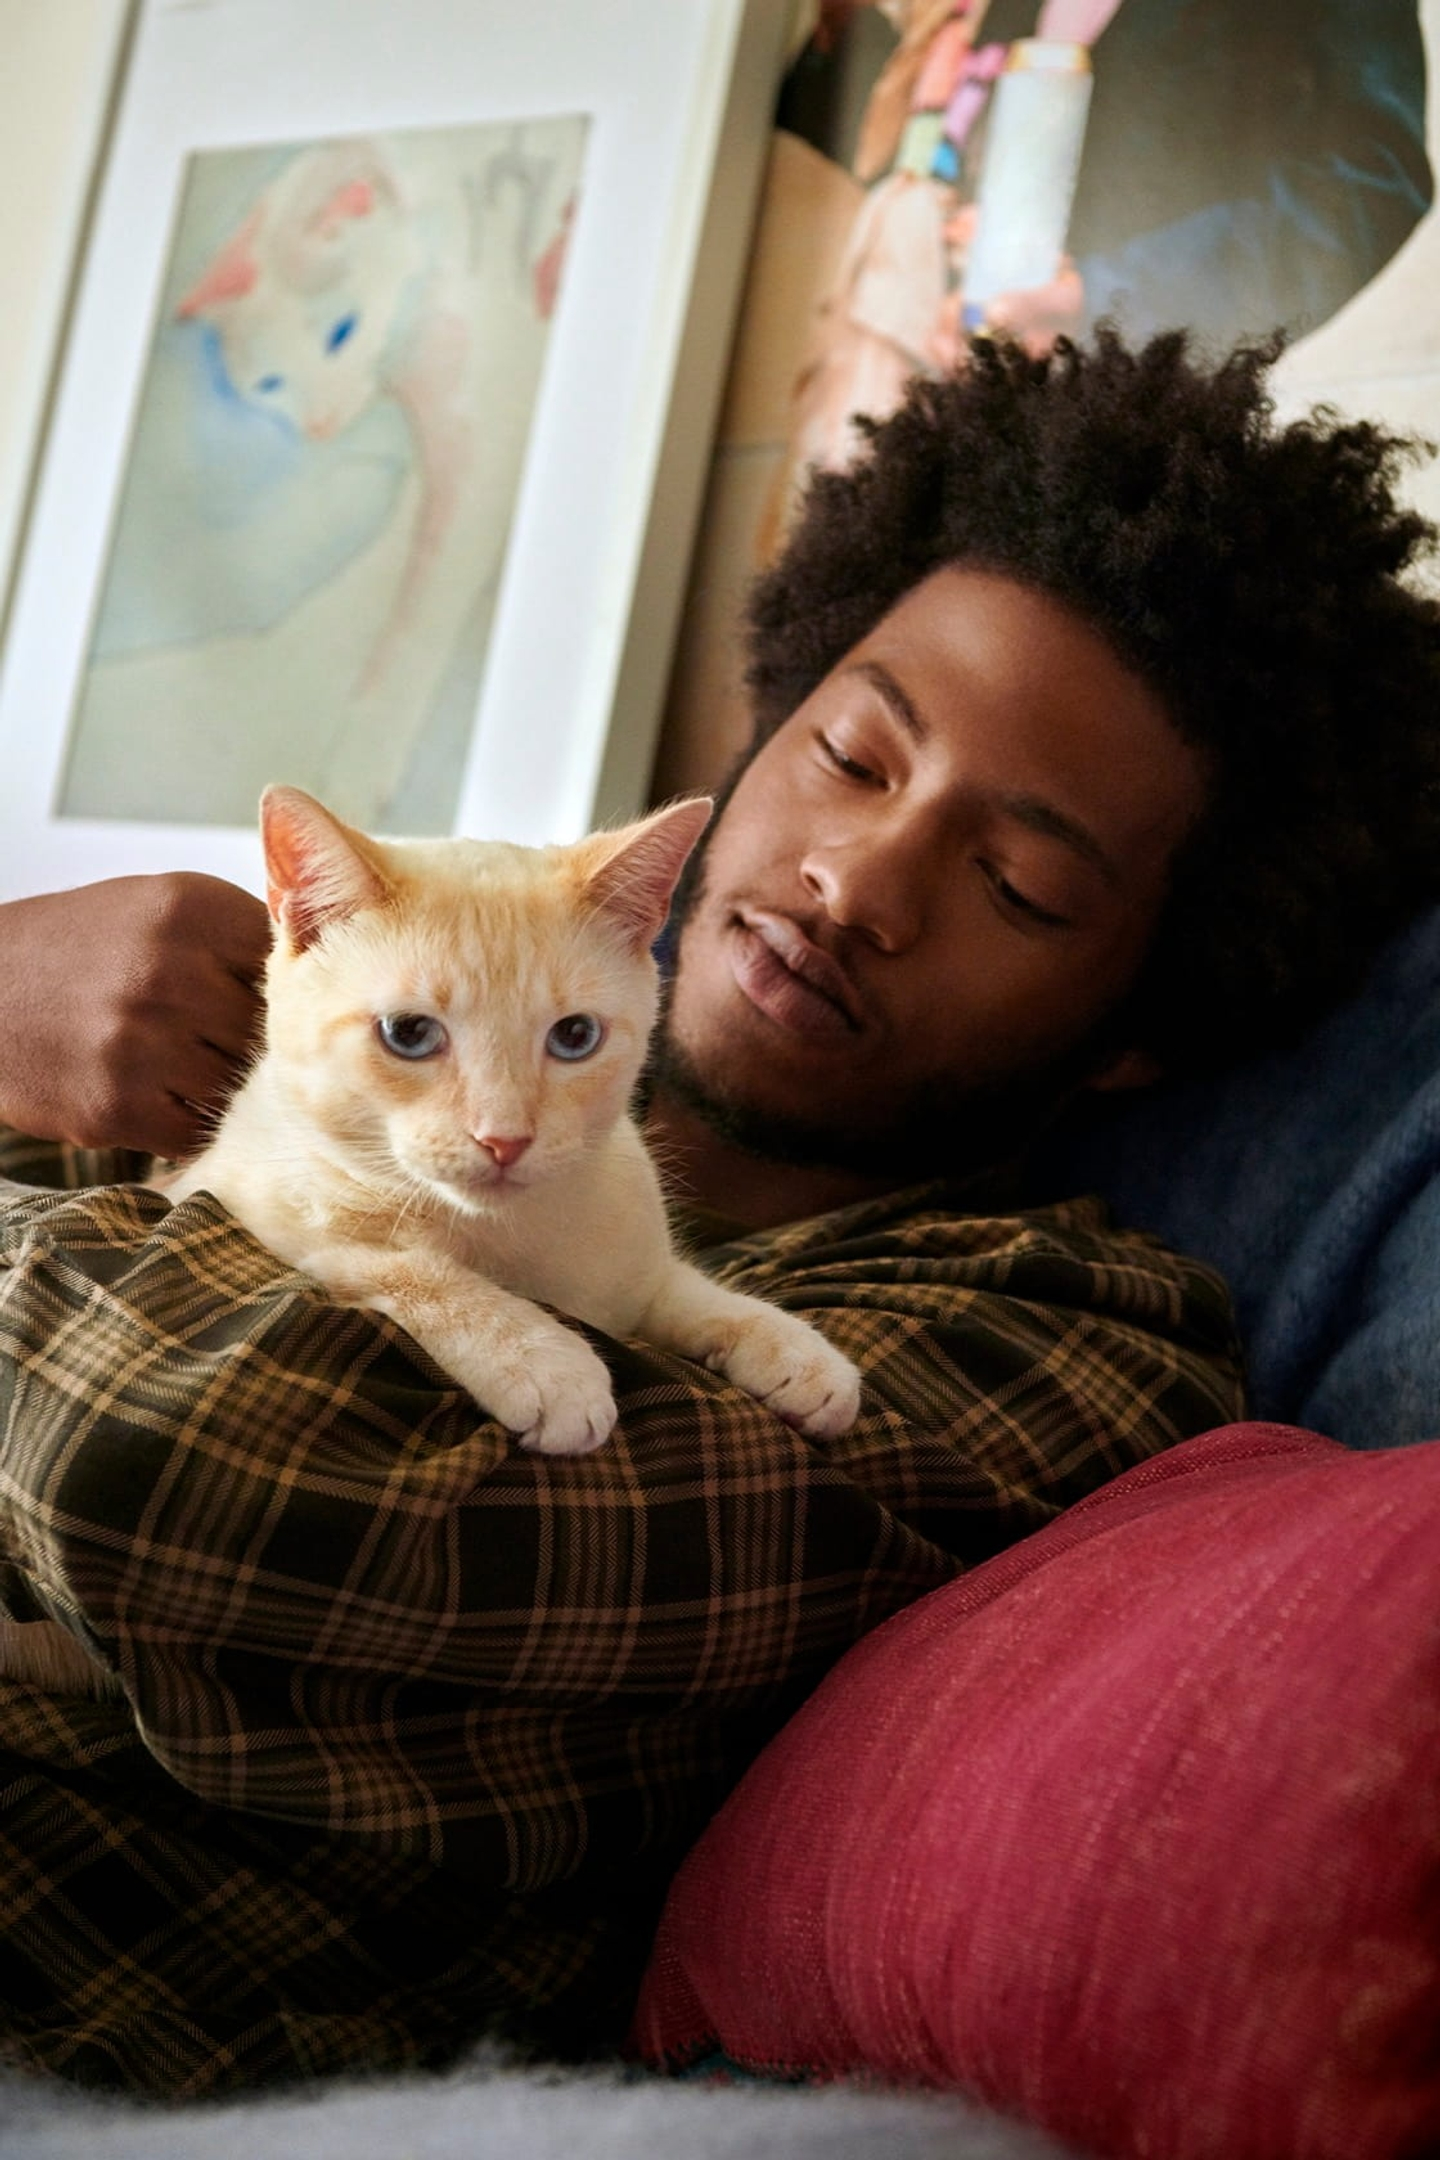 Man holding a cat in his arms